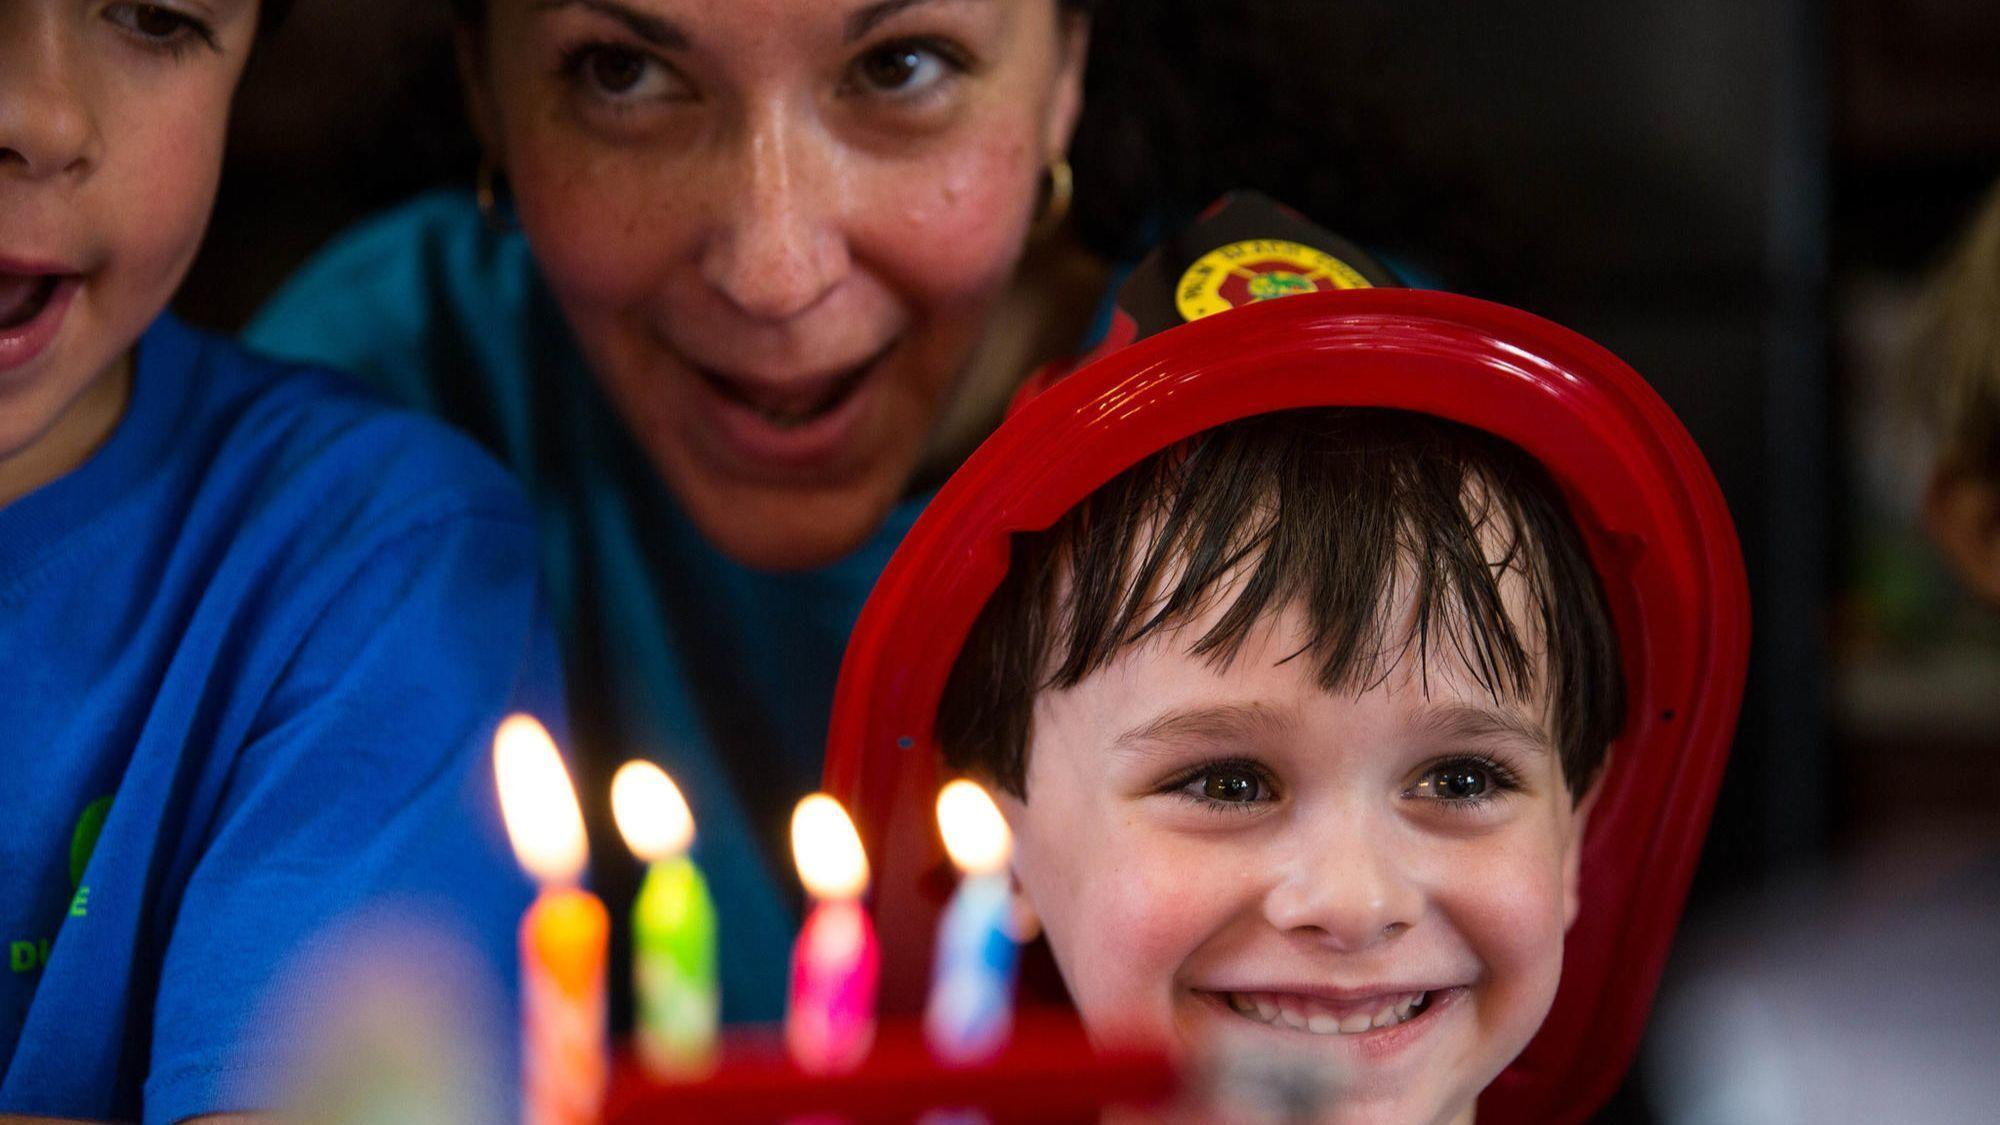 Firefighters Answer Call To Make Boys Birthday Dream Come True